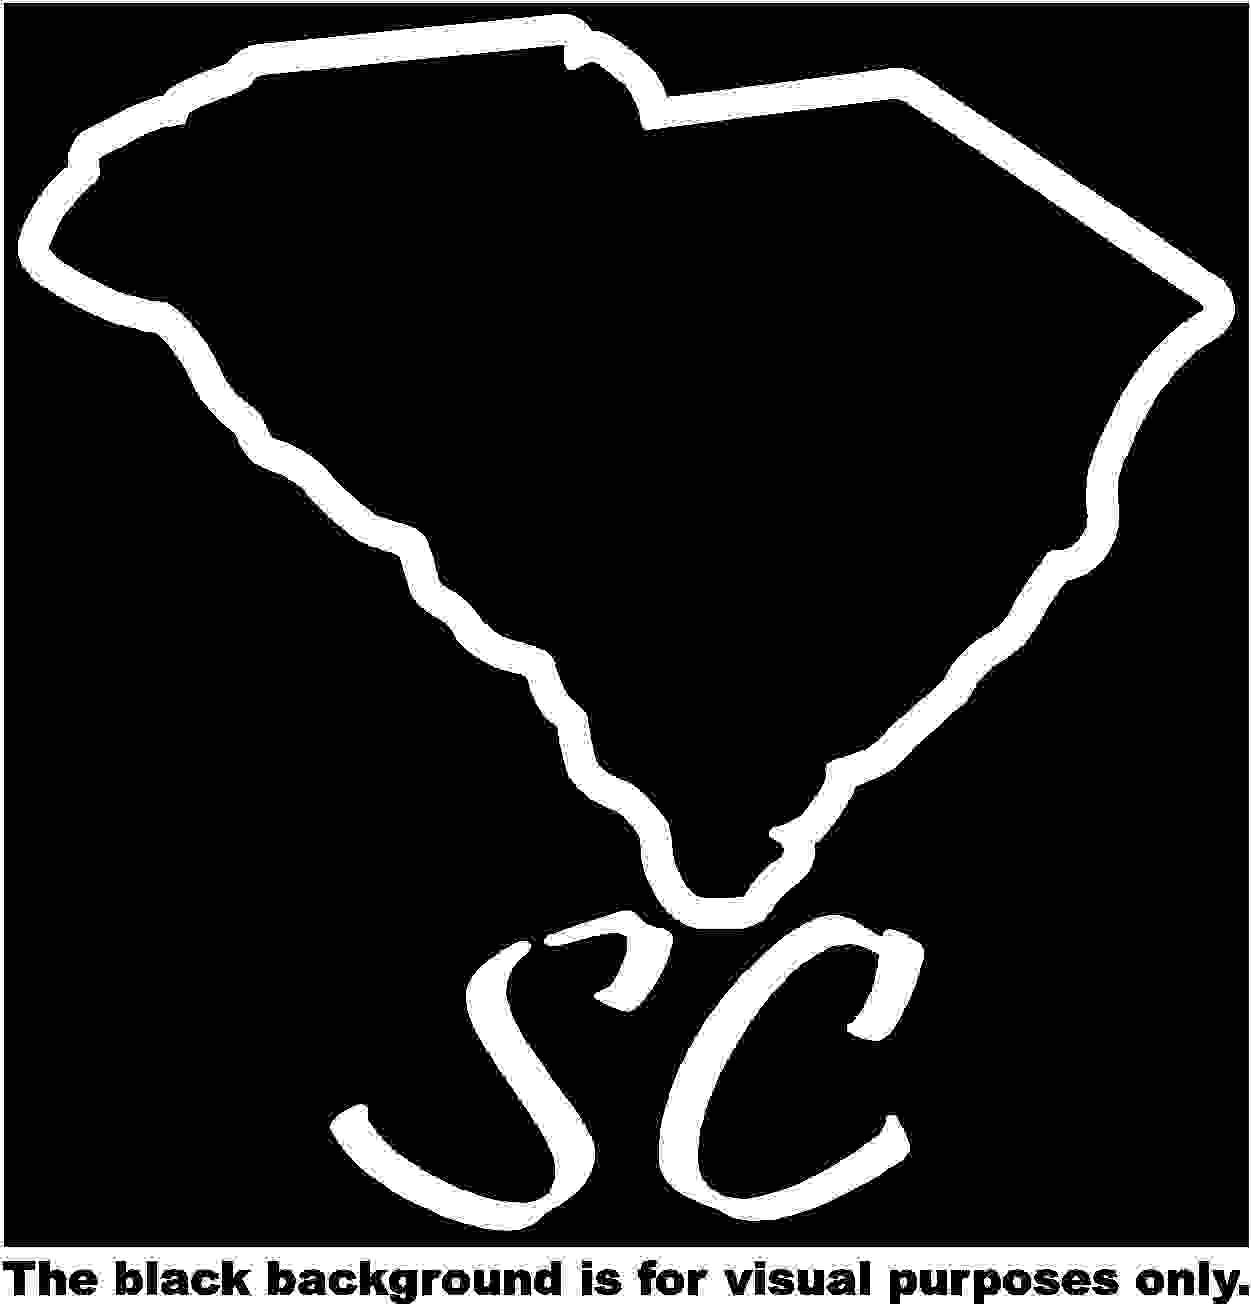 States South Carolina Decal Sticker Vinyl Car Window Tumblers Wall Laptops Cellphones Phones Tablets Ipads Helmets Motorcycles Computer Towers V and T Gifts